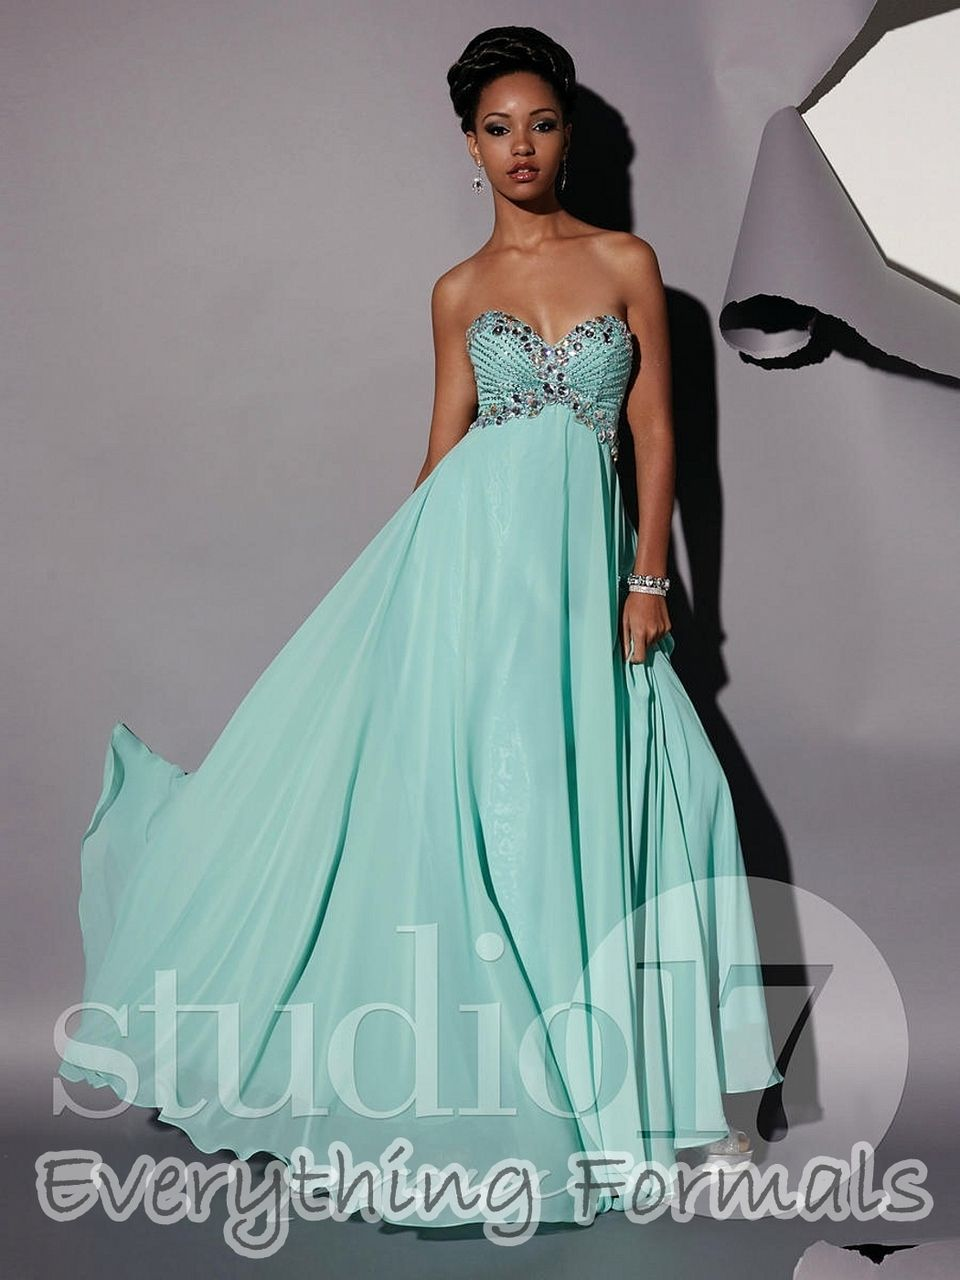 Lovely prom dresses lubbock tx gallery wedding ideas memiocall unique prom dresses lubbock tx picture collection wedding dress ombrellifo Gallery